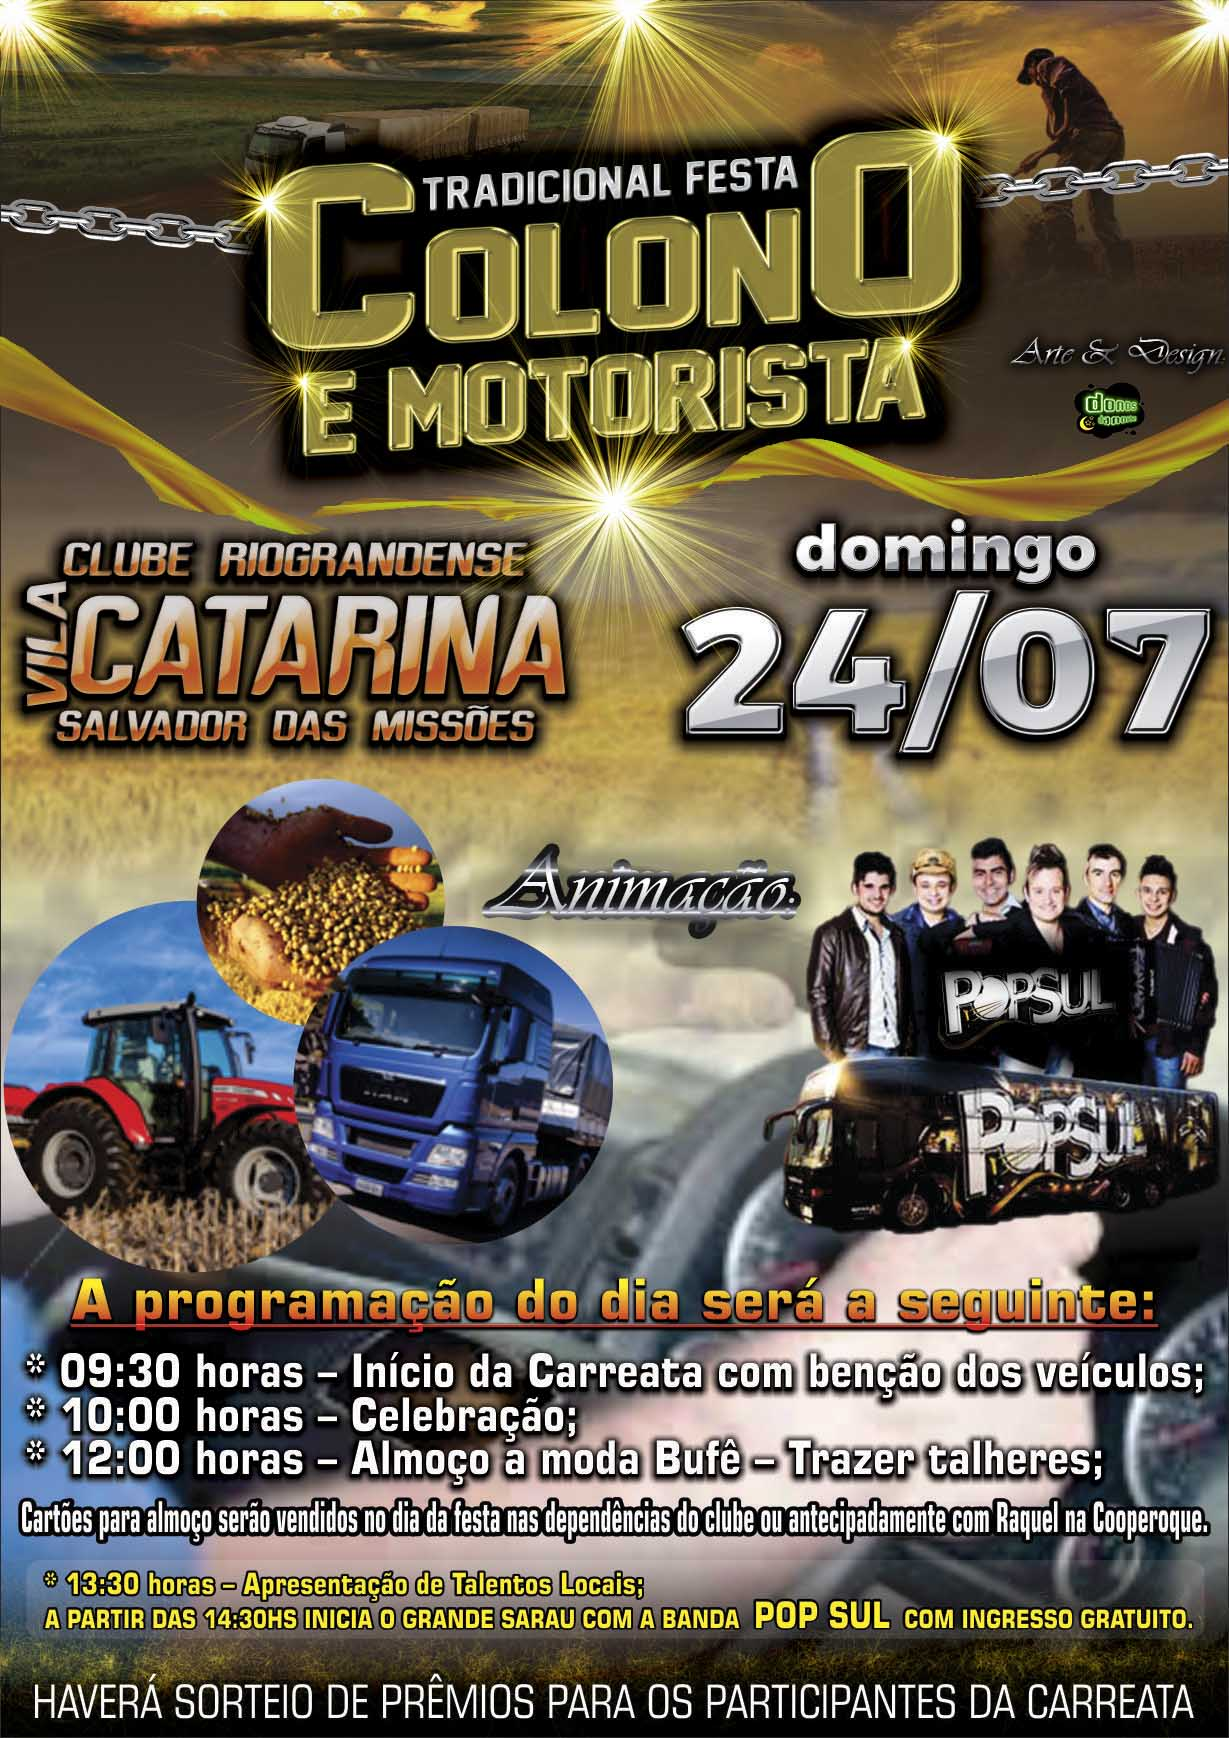 festa_do_colono_e_motorista_vila_catarina_24_07_16